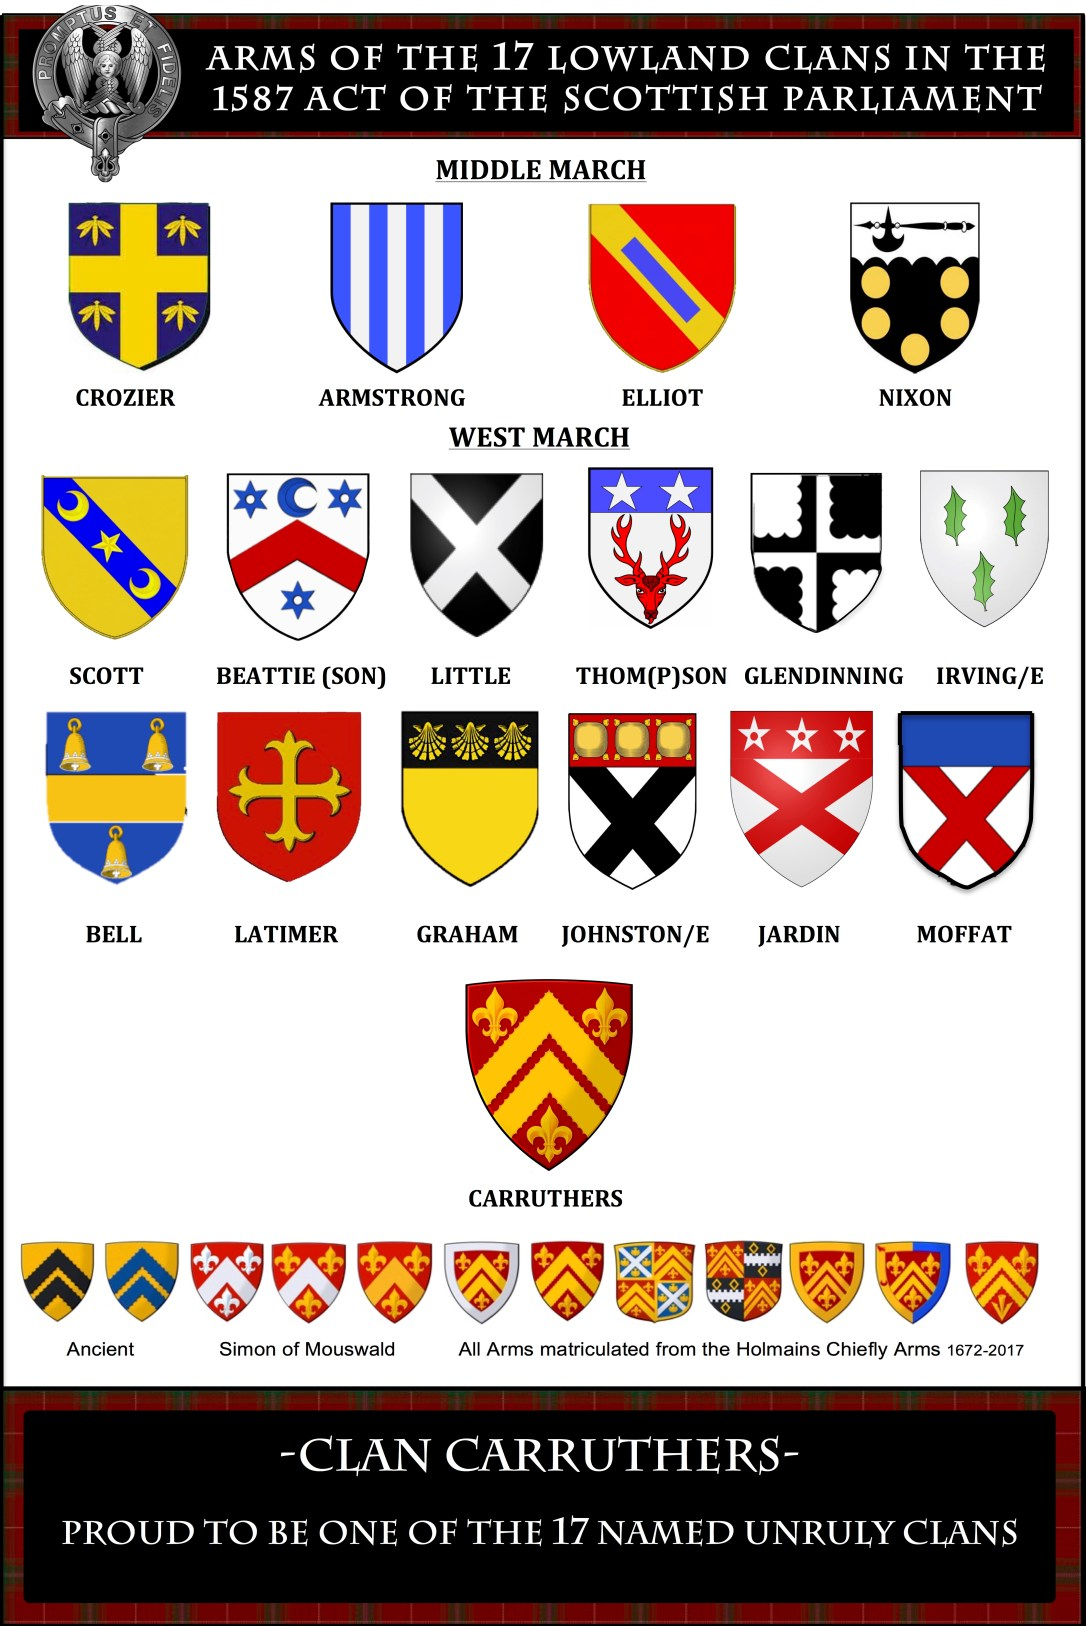 ARMS OF THE 17 FAMILIES final.jpg